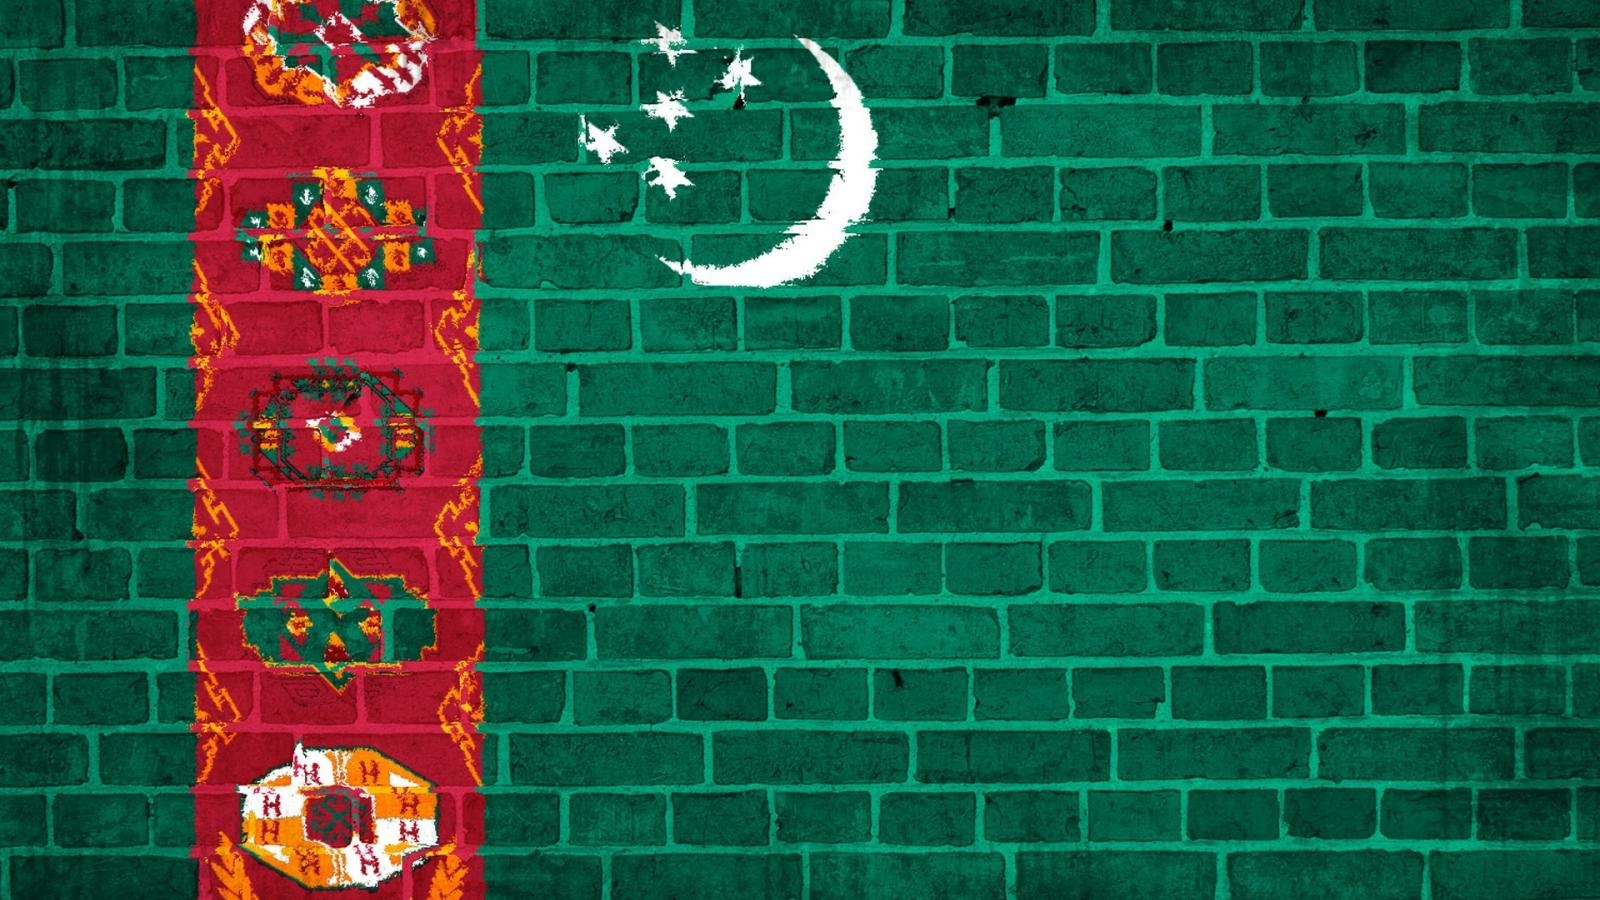 flag of Turkmenistan Wallpaper and Background Image 1600x900 1600x900